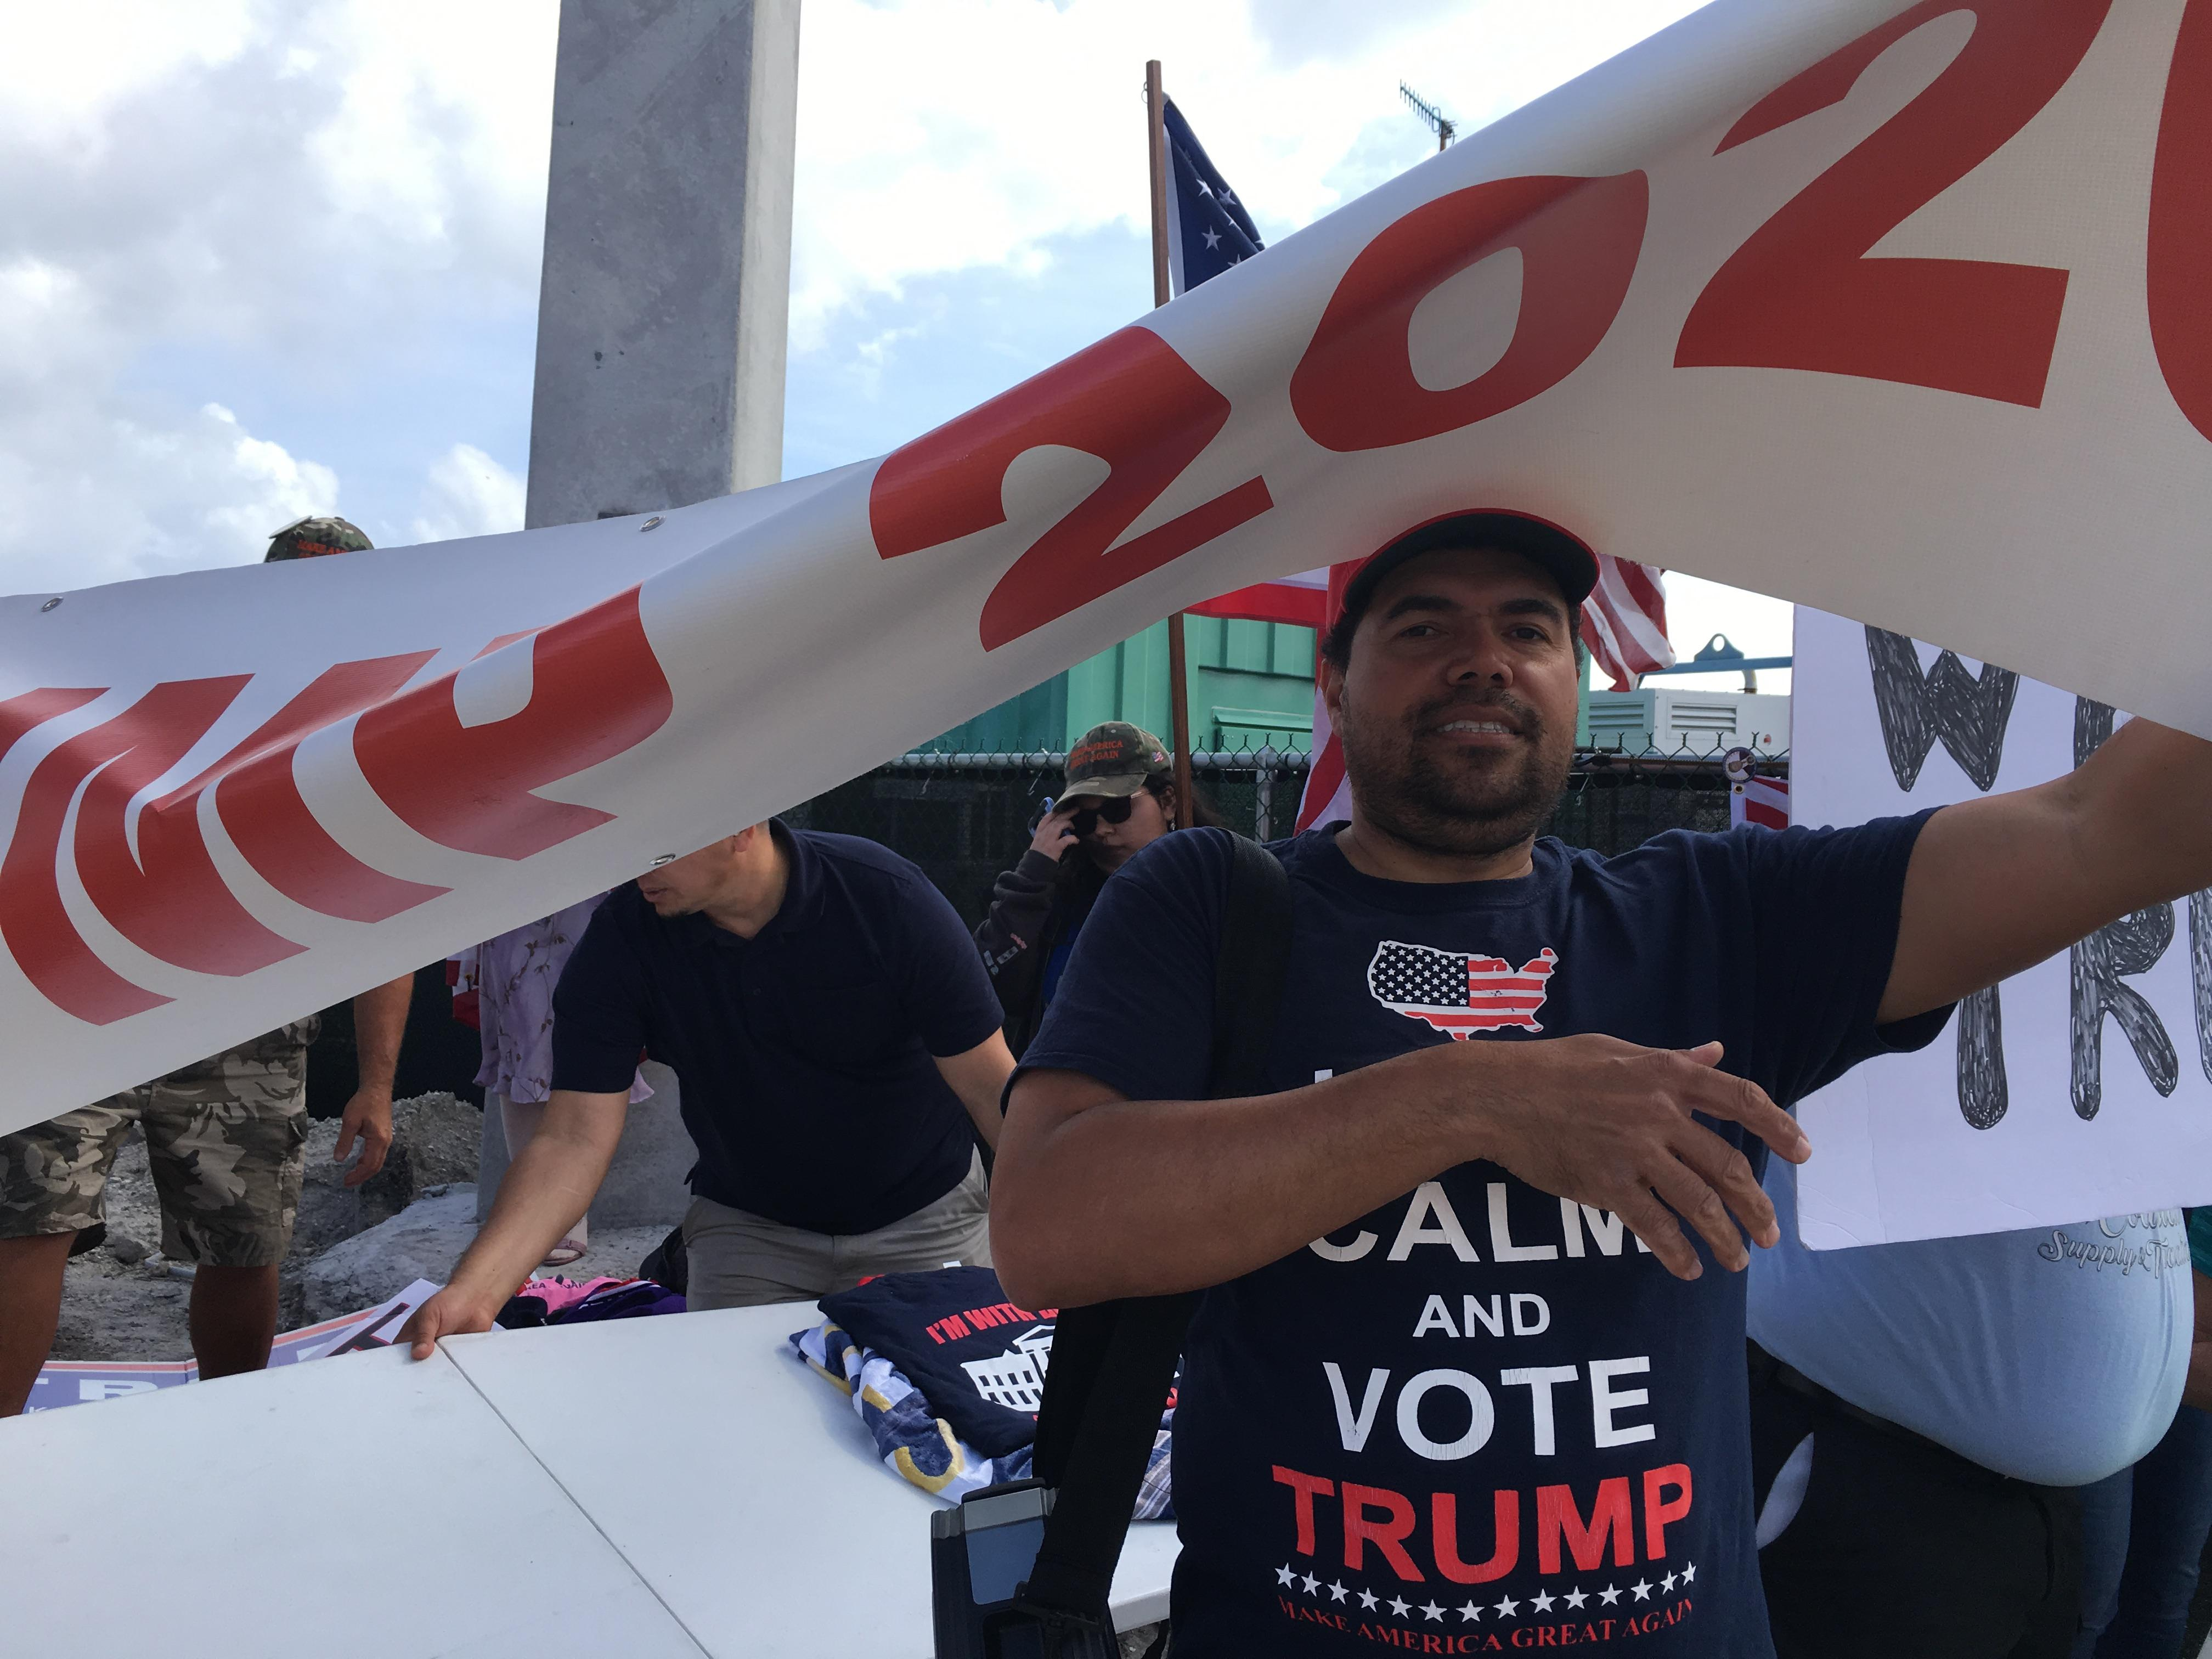 President Trump's supporters also came to the protest to defend the president. (WPEC)